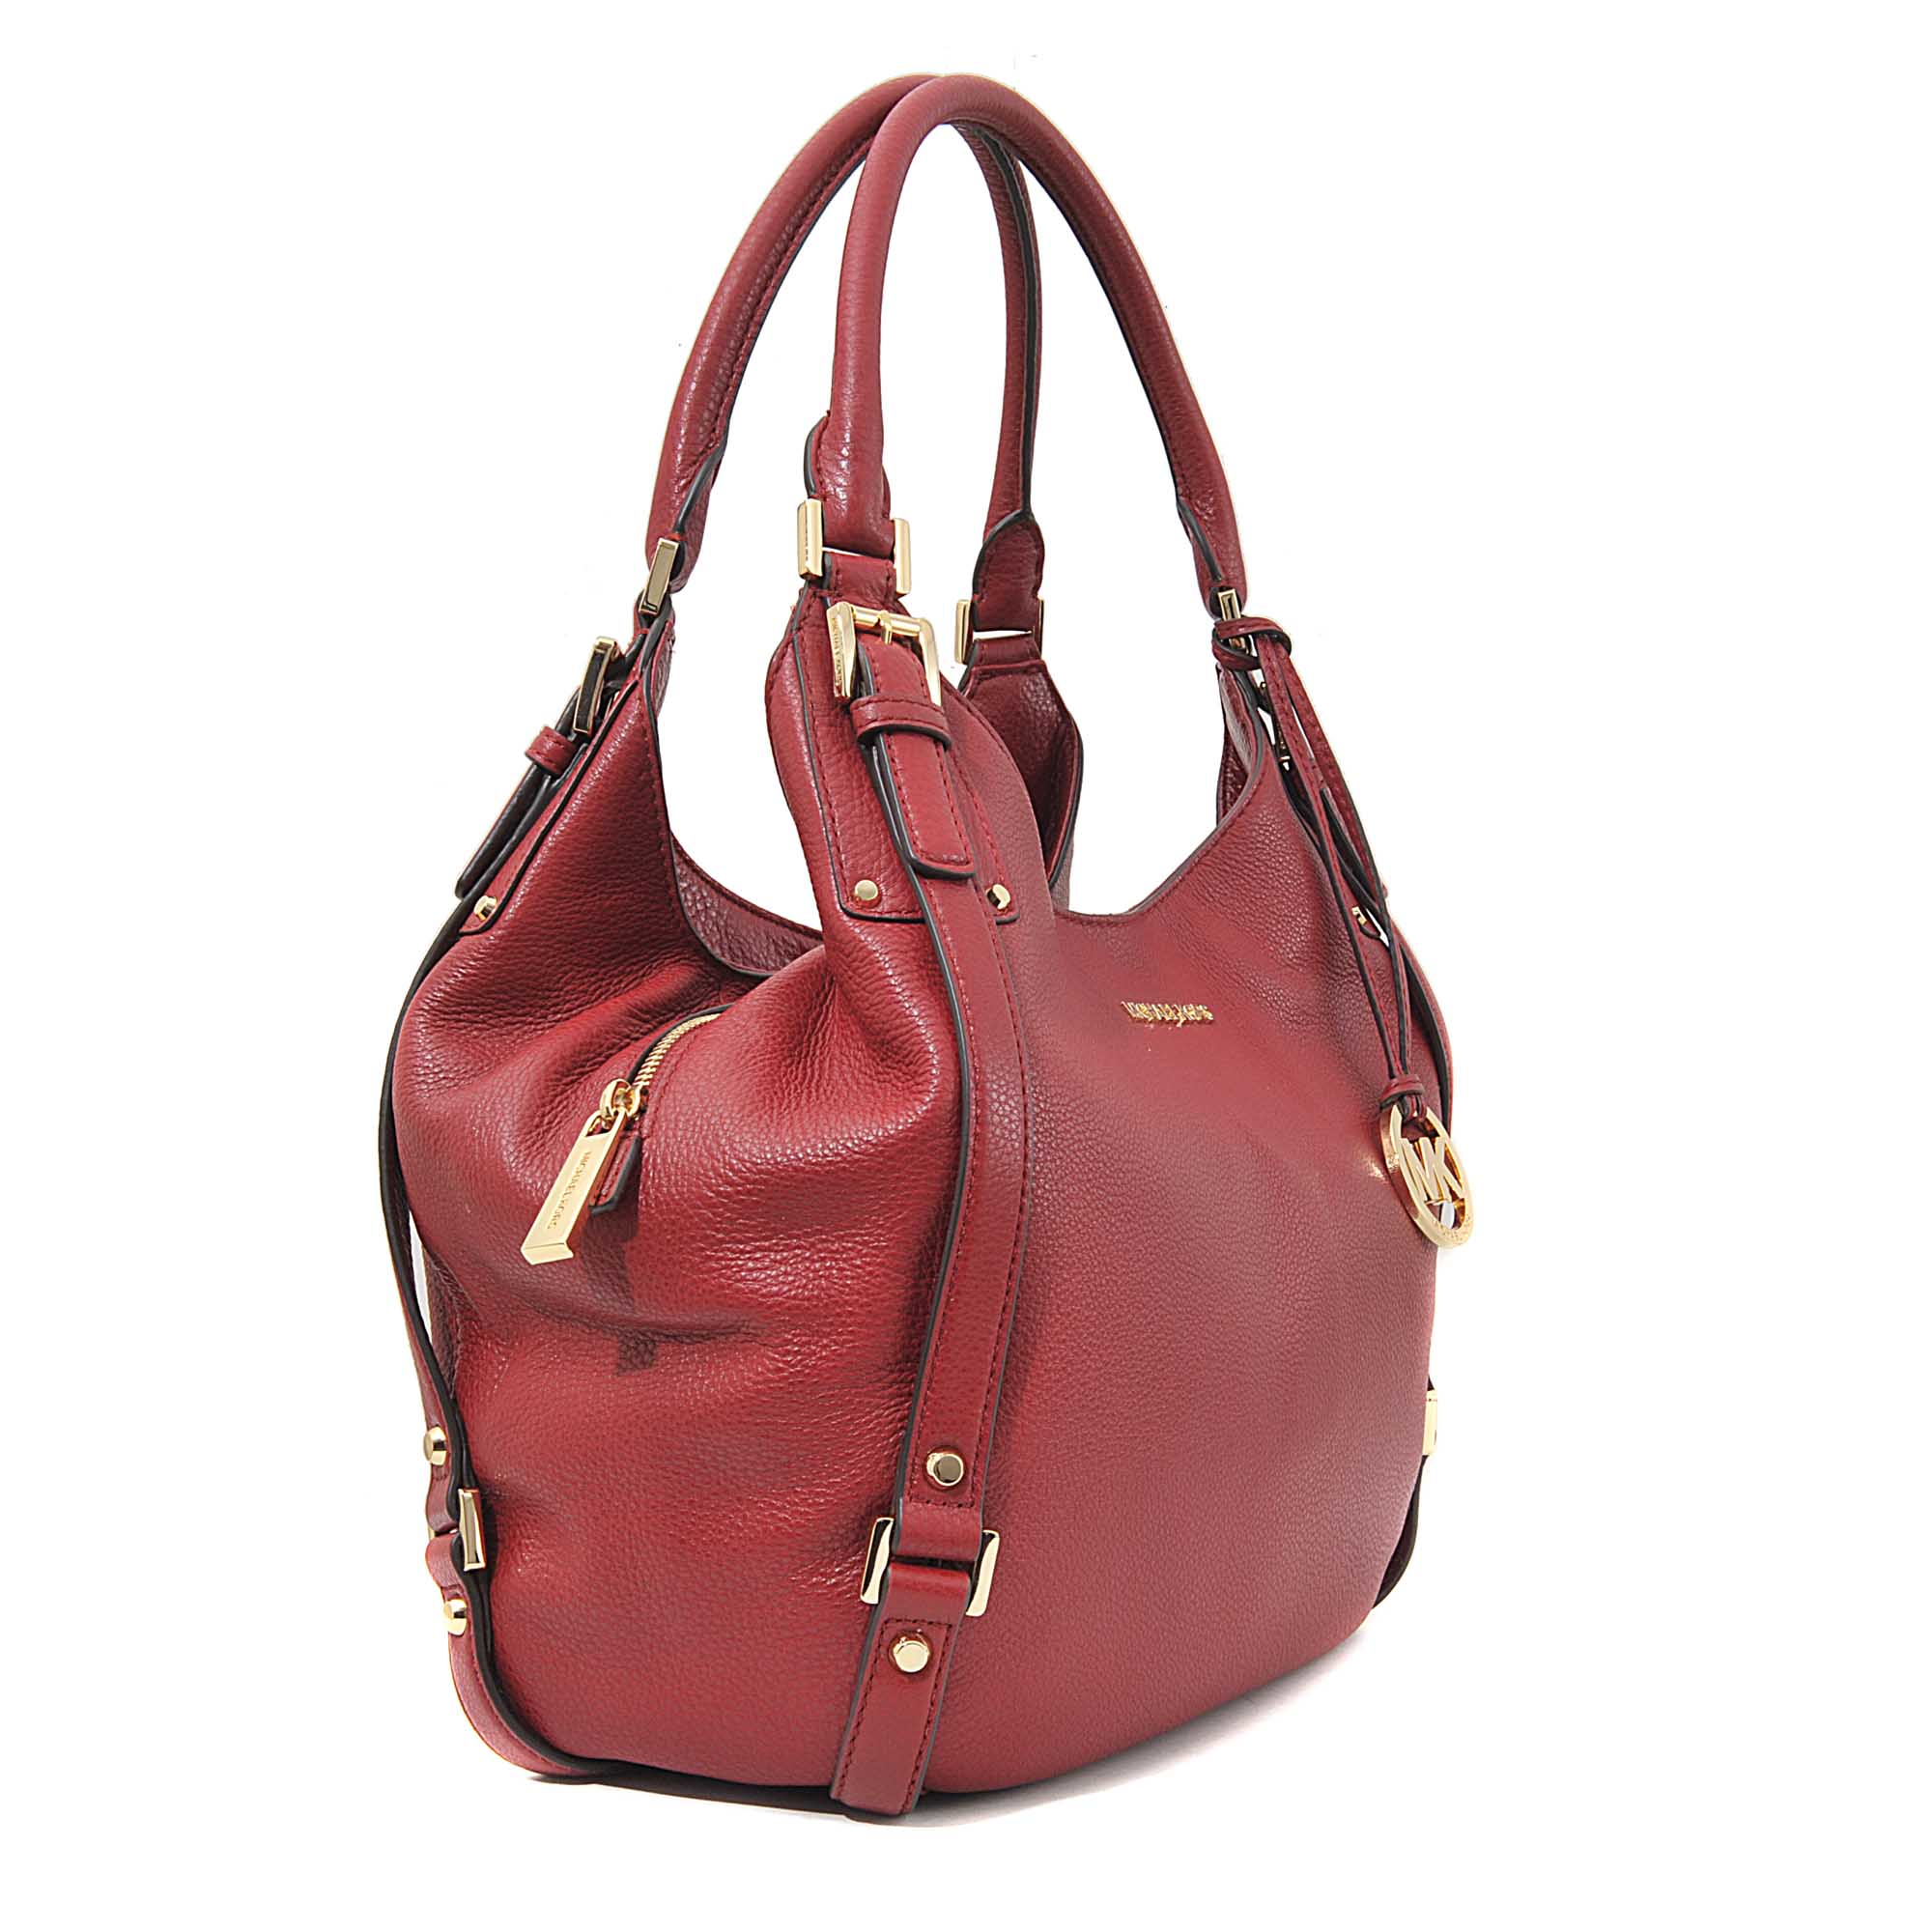 4a10e541d0a317 MICHAEL Michael Kors Bedford Large Shoulder Tote in Red - Lyst